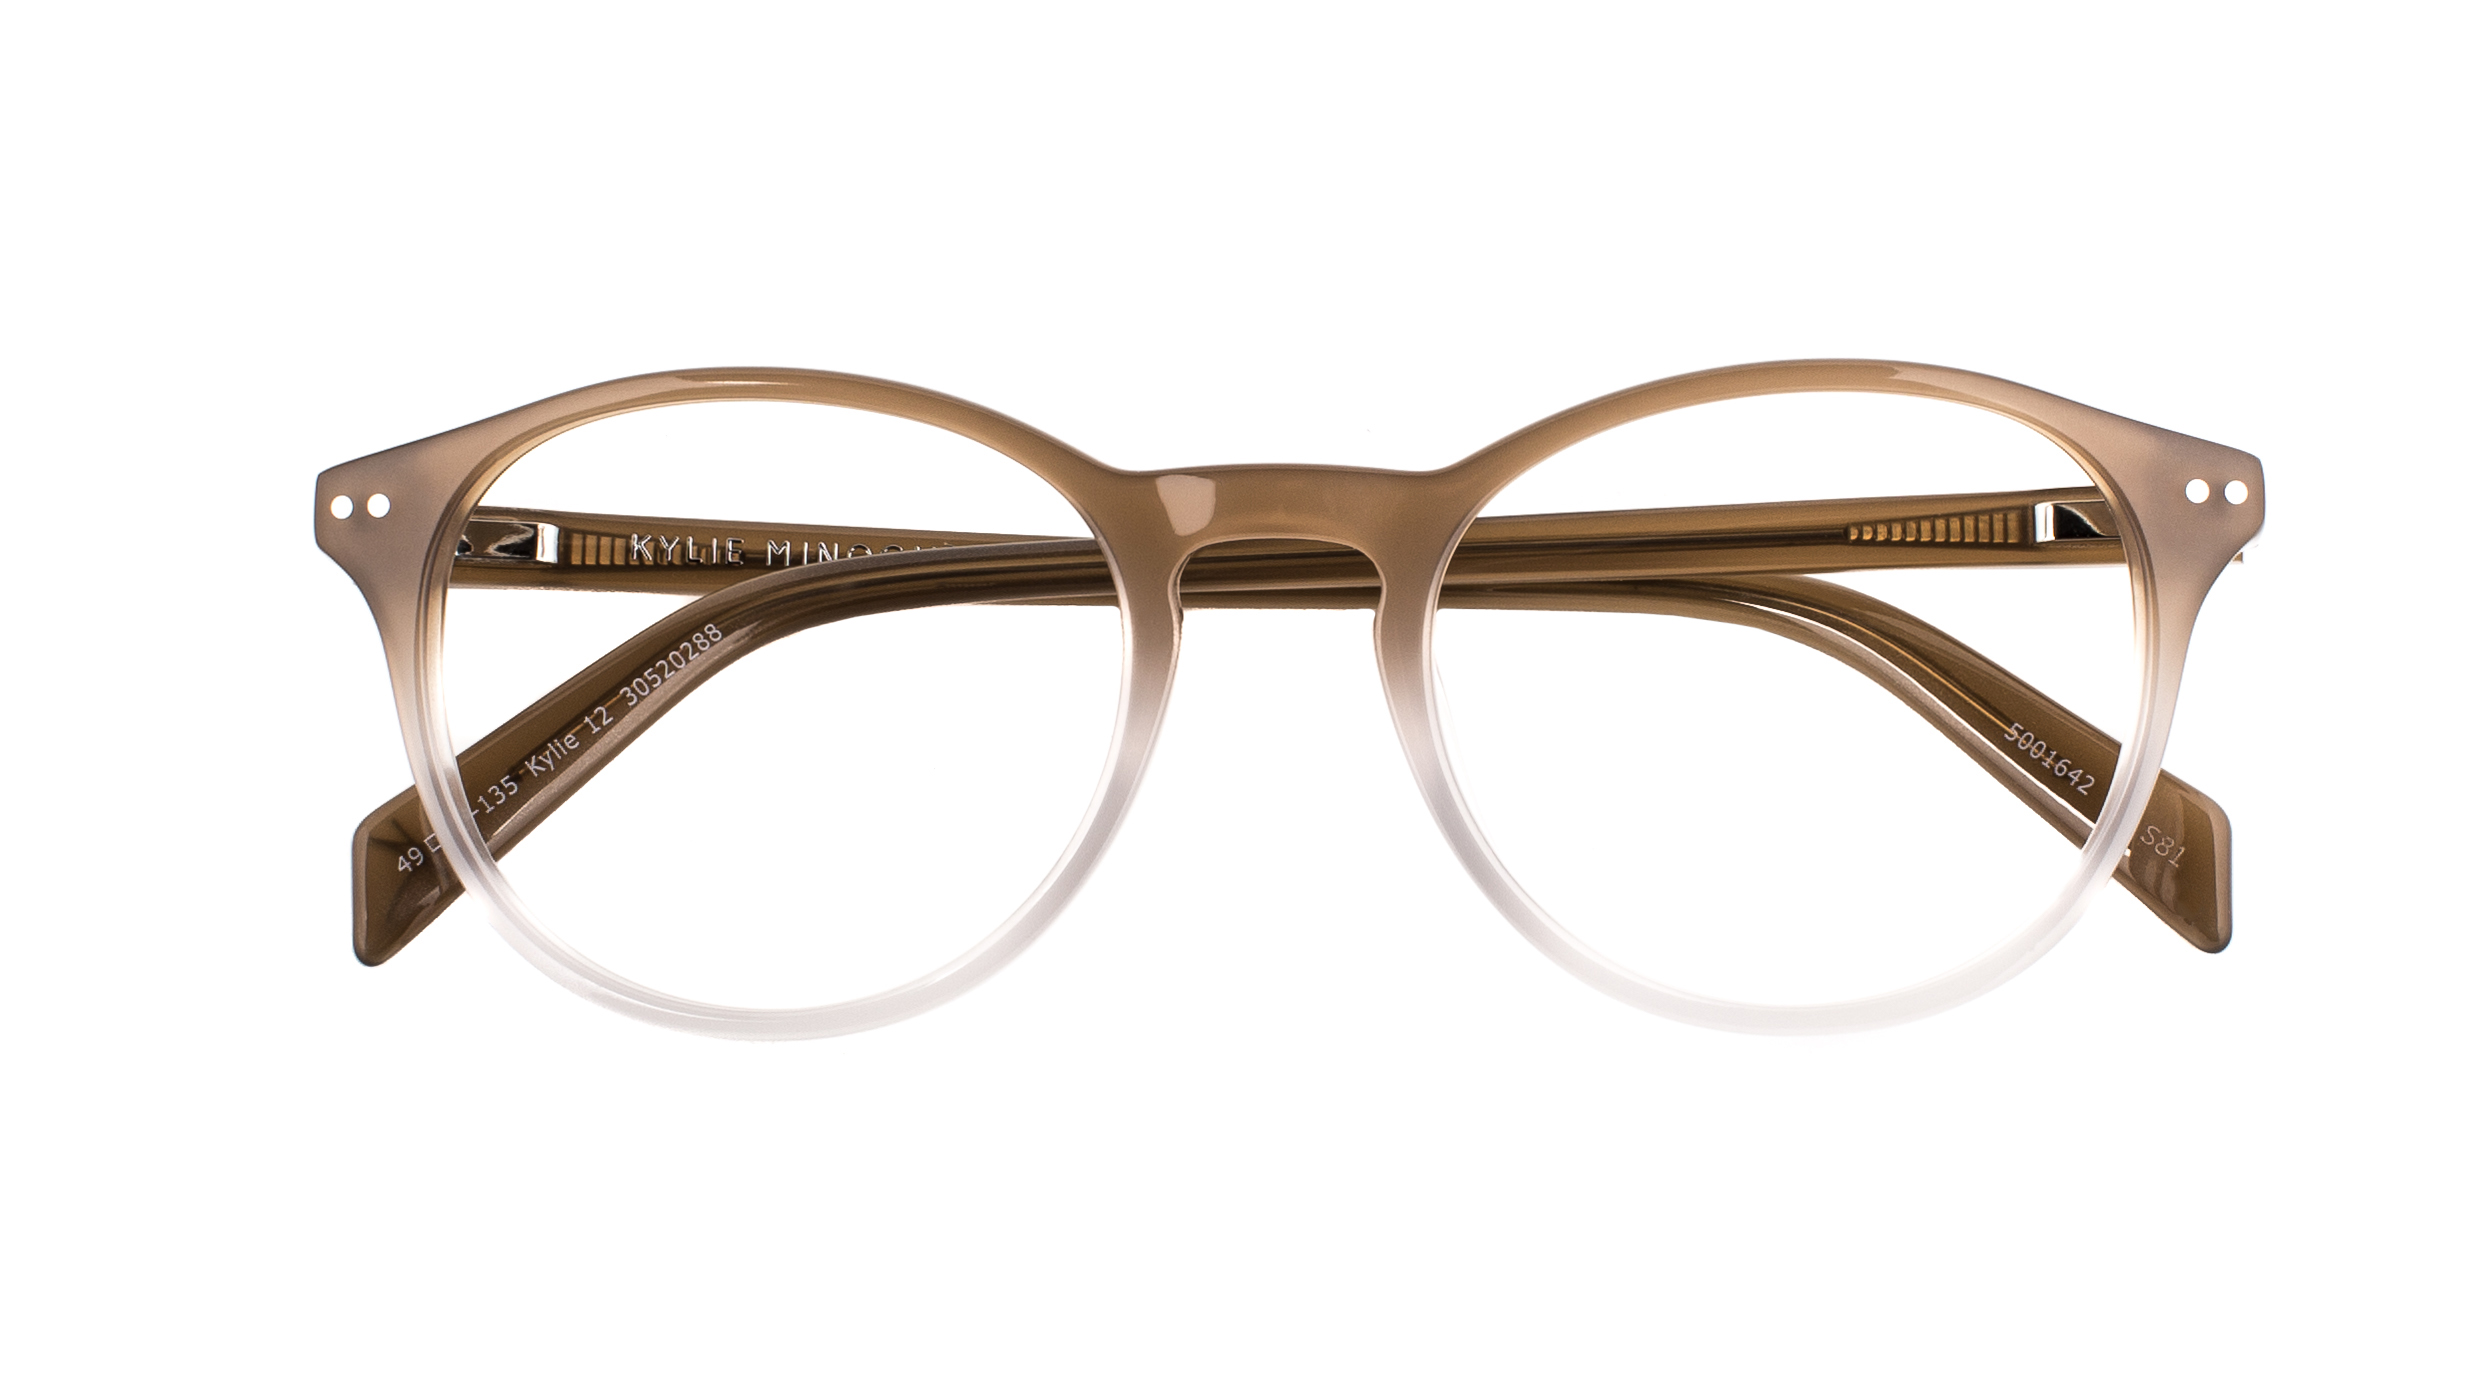 Kylie Minogue Eyewear_Kylie 12_SKU 30520288_RRP 2 pairs from $369